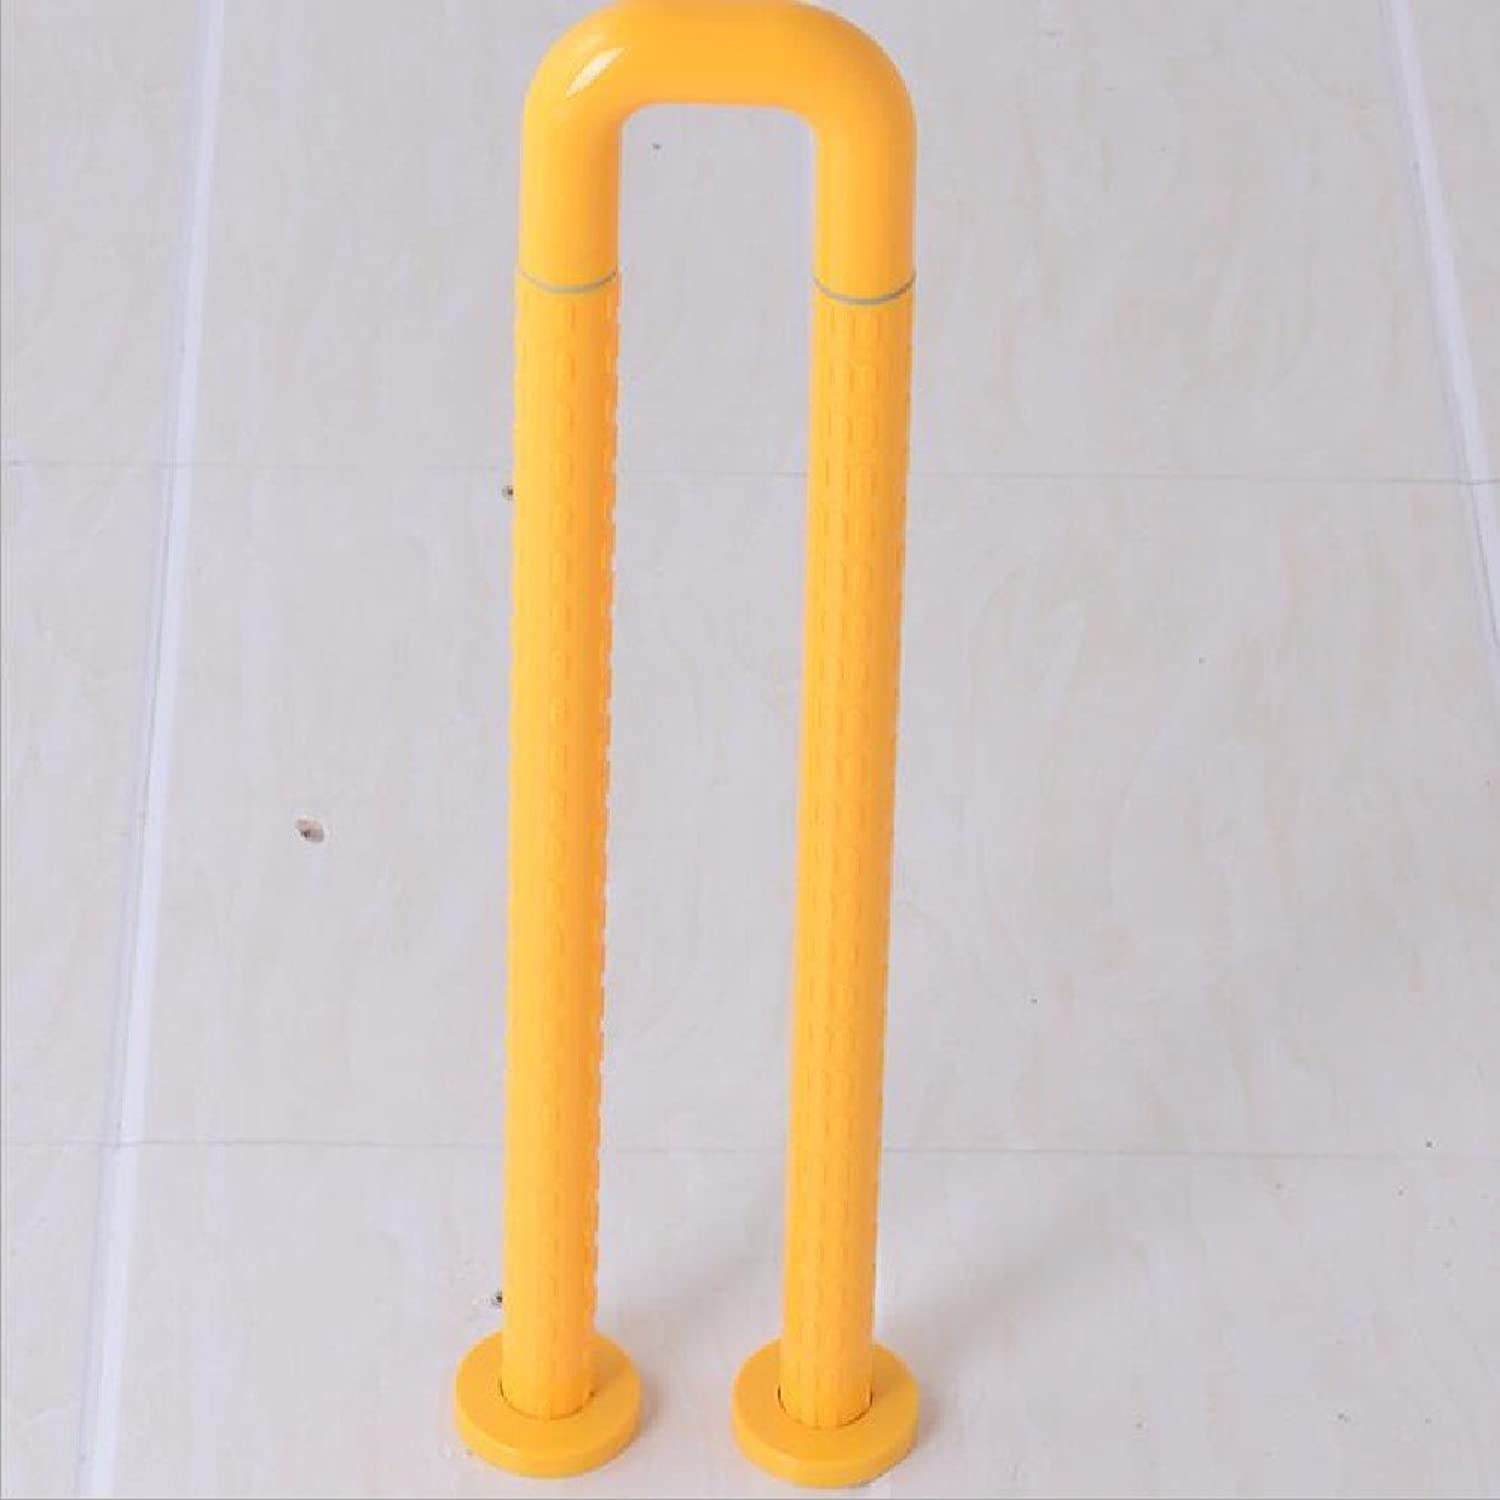 HQLCX Handrail Barrier Free U Handrails For Elderly People With Disabilities,Yellow